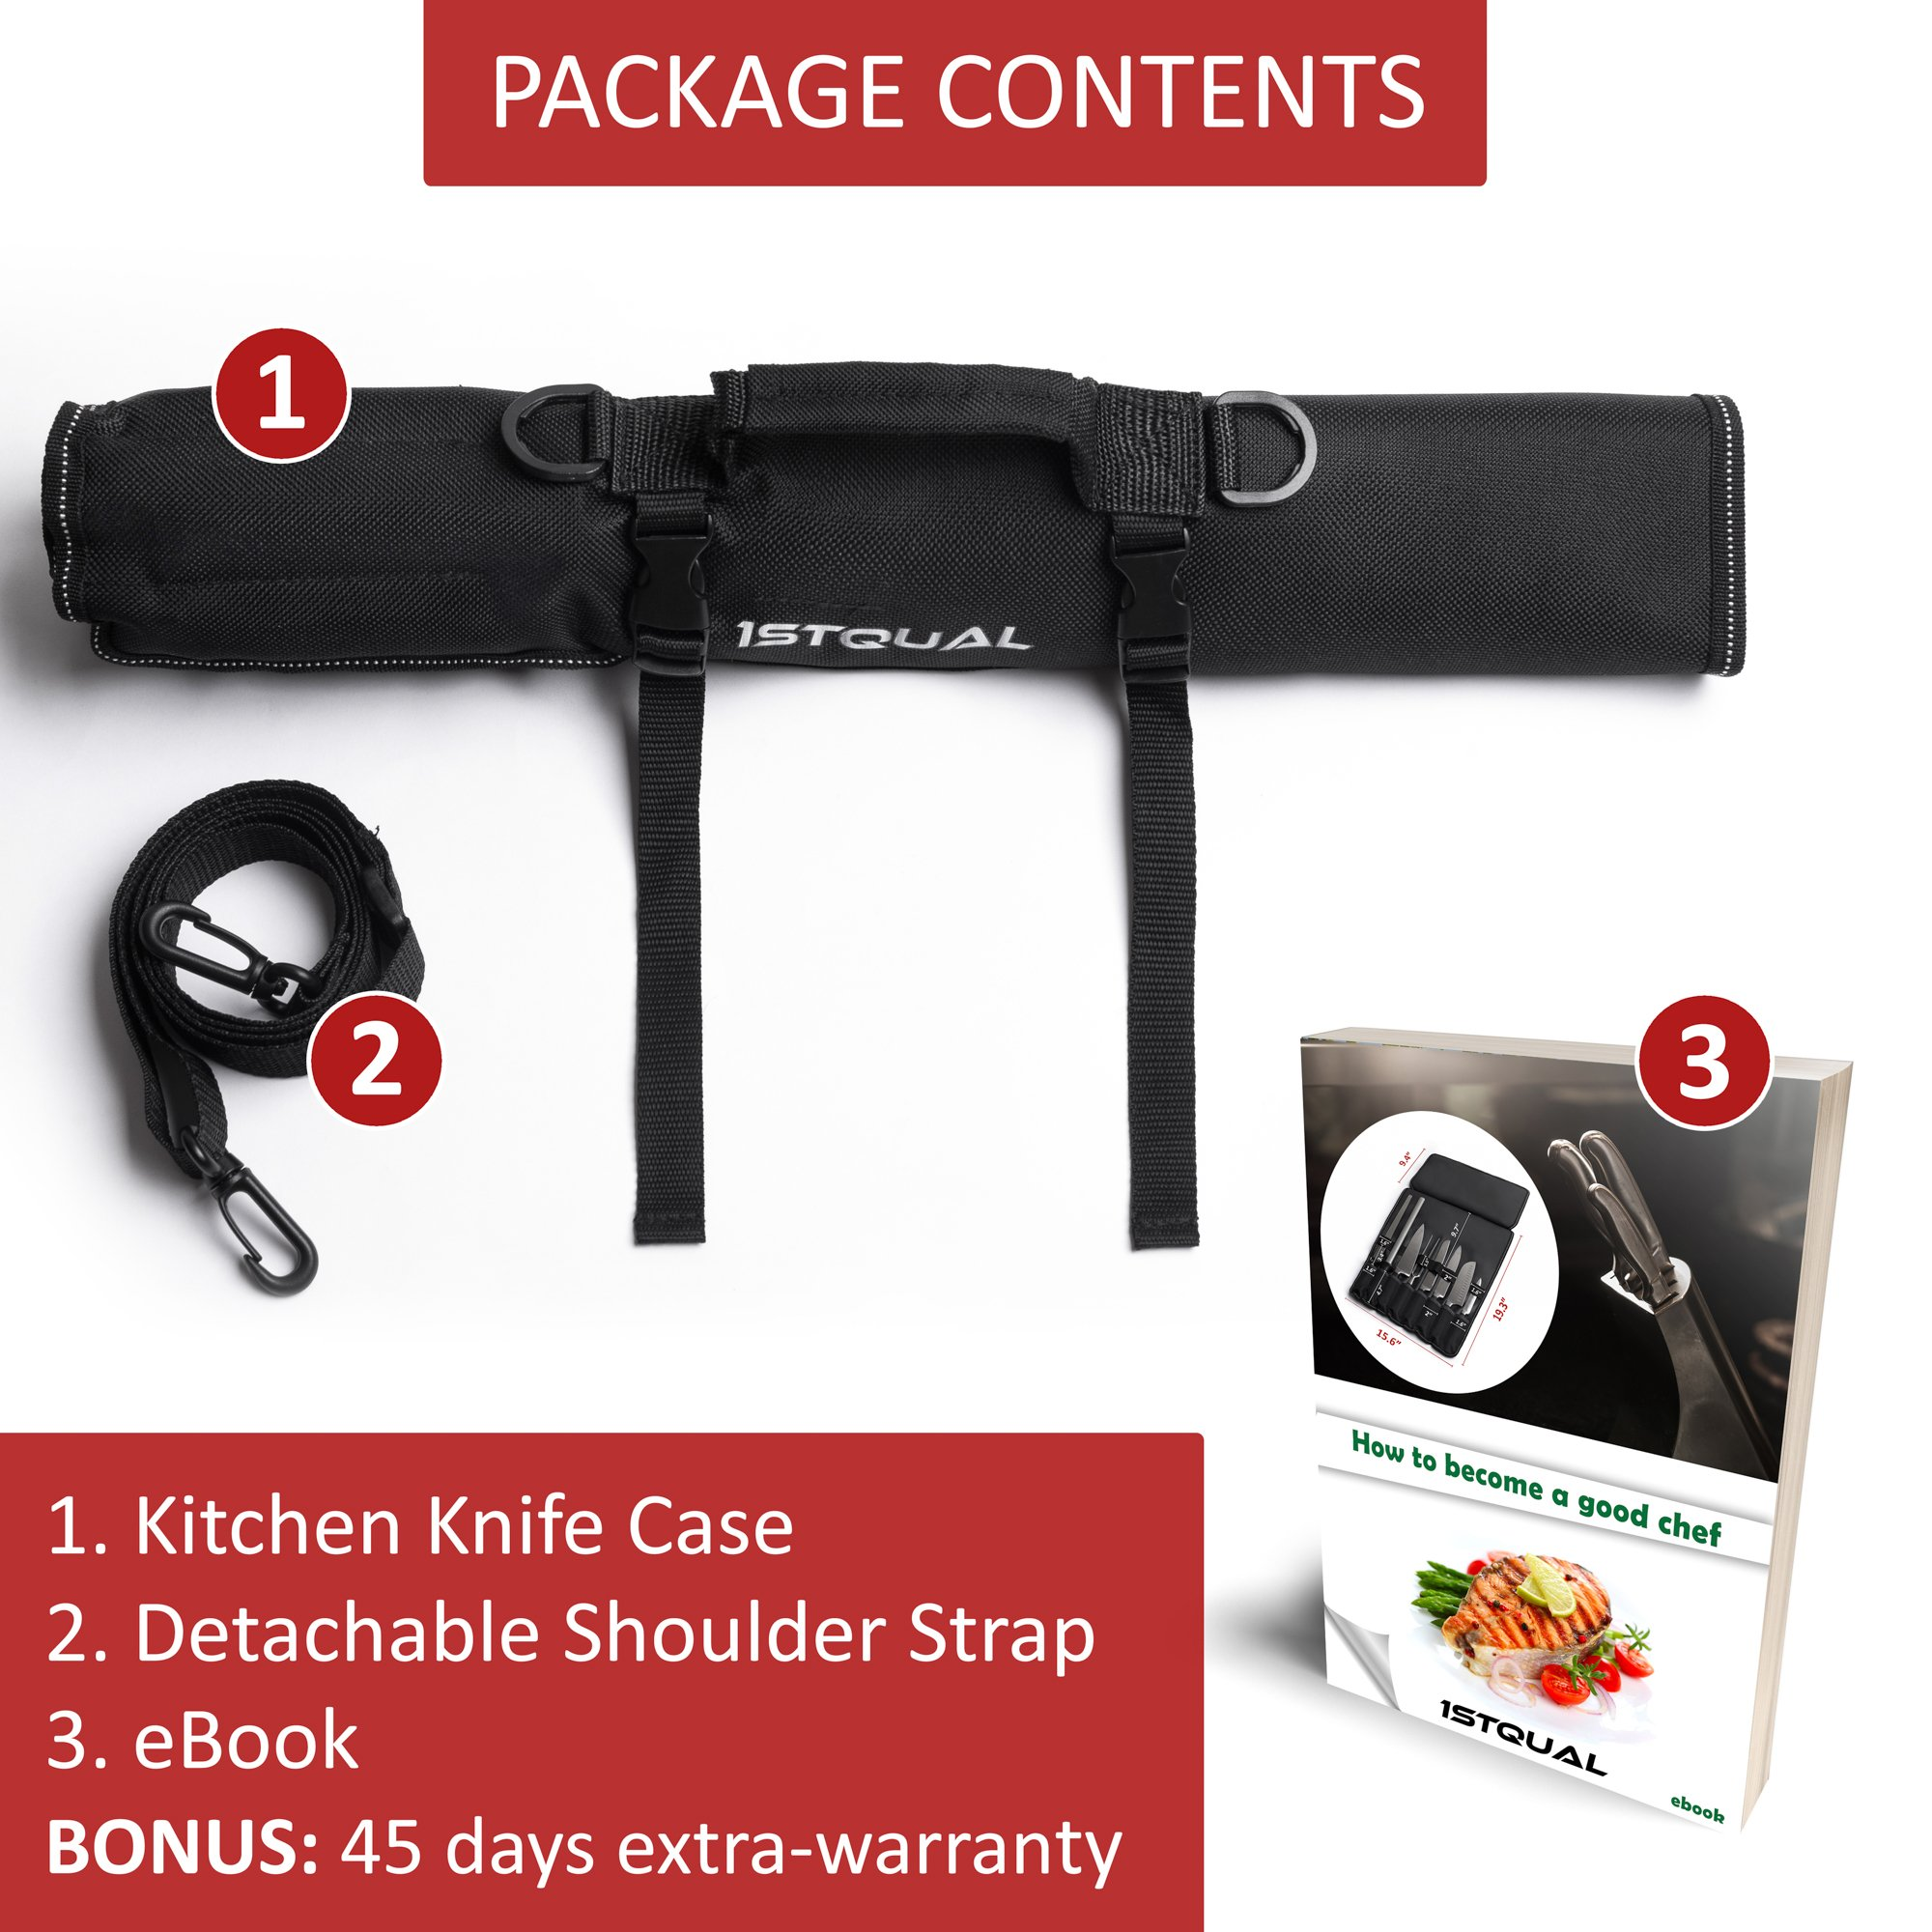 Chef Knife Bag (8 slots) – Durable and Waterproof Culinary Roll Case Utensil With Shoulder Strap and Holder – Knives Organizer For Chefs and Students + eBook Bonus + Extra-Warranty by 1stqual by 1stqual (Image #7)